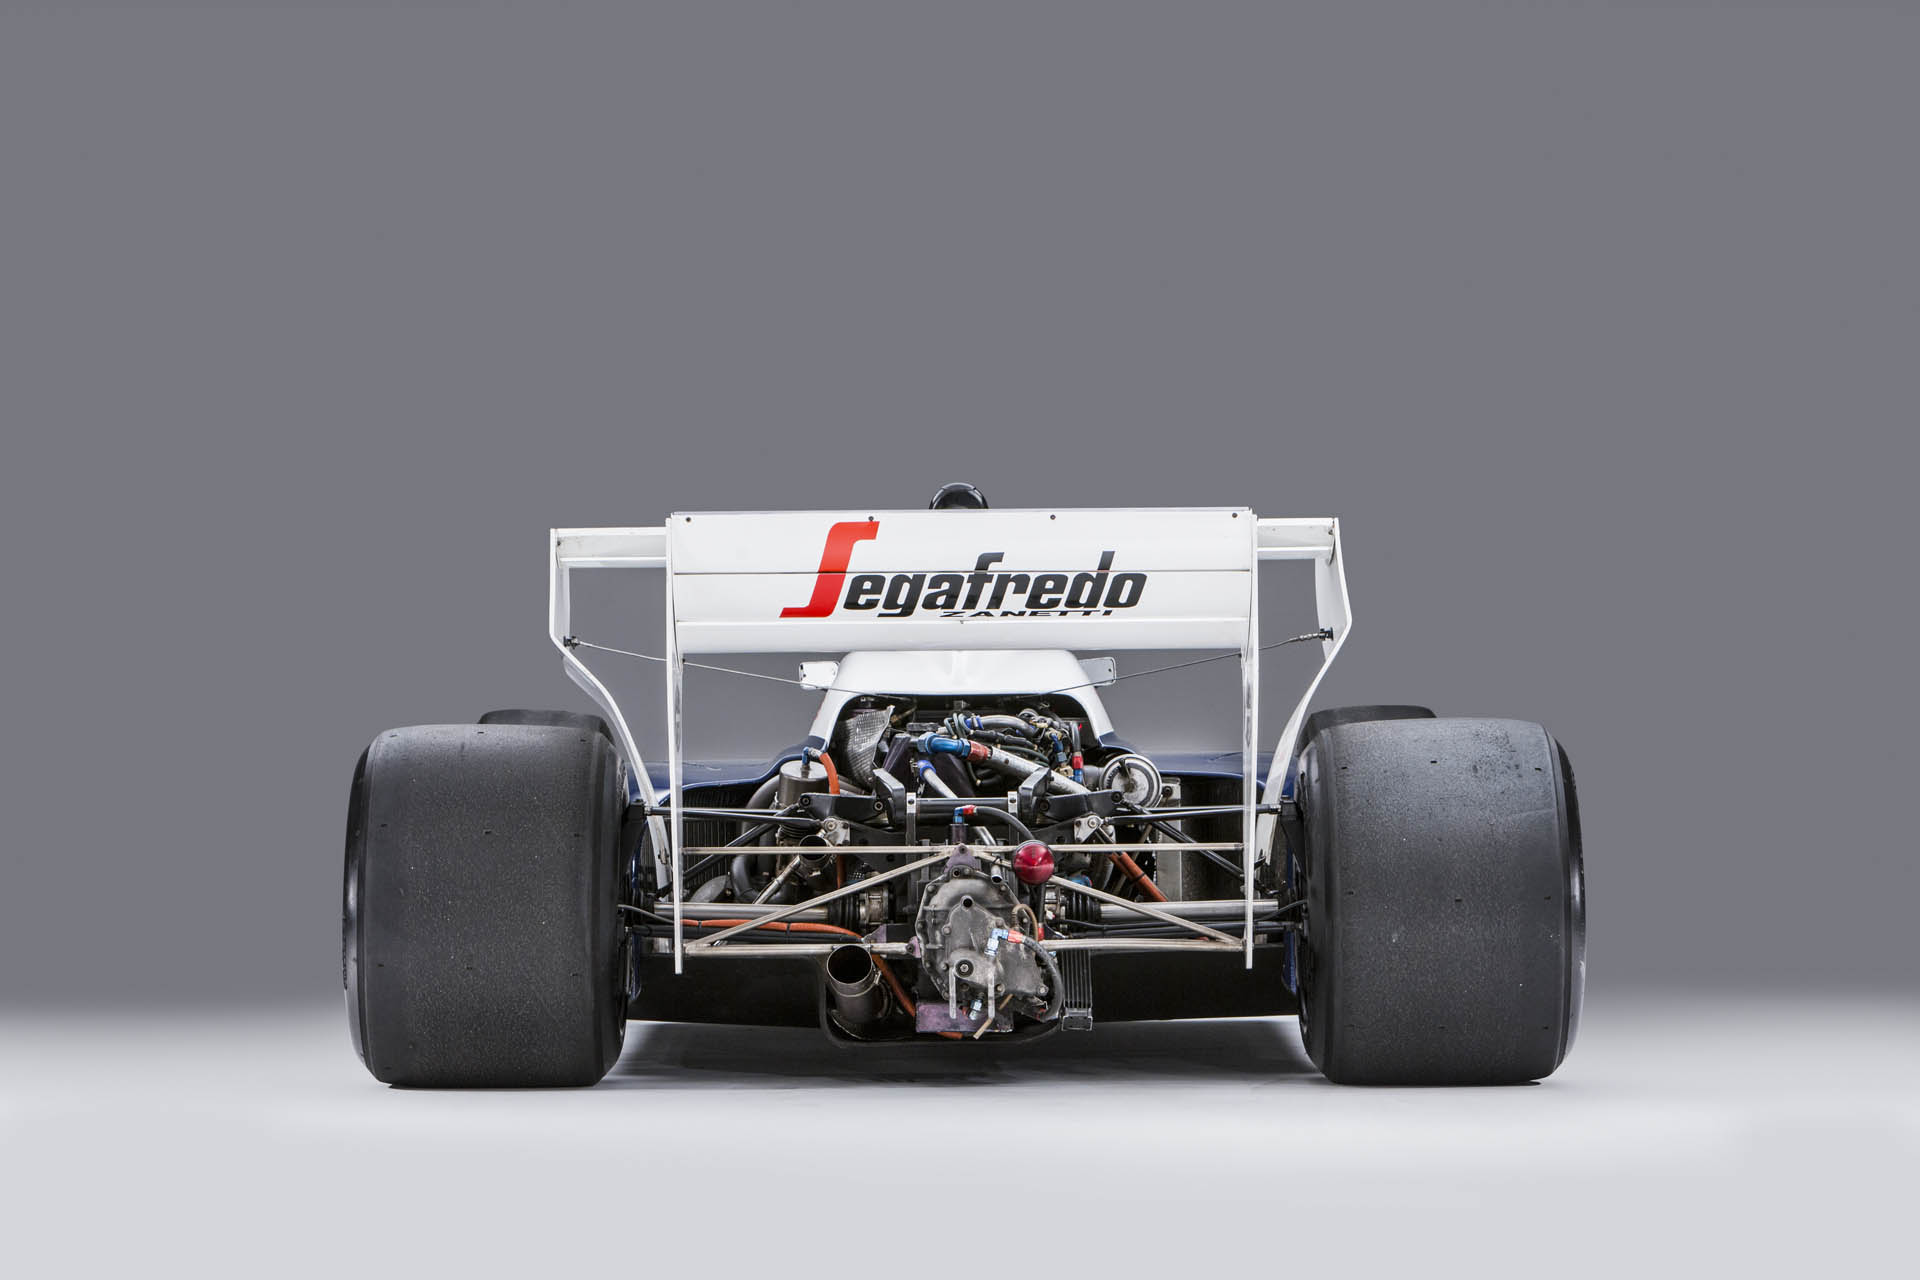 une formule 1 d 39 ayrton senna vendre photo 13 l 39 argus. Black Bedroom Furniture Sets. Home Design Ideas